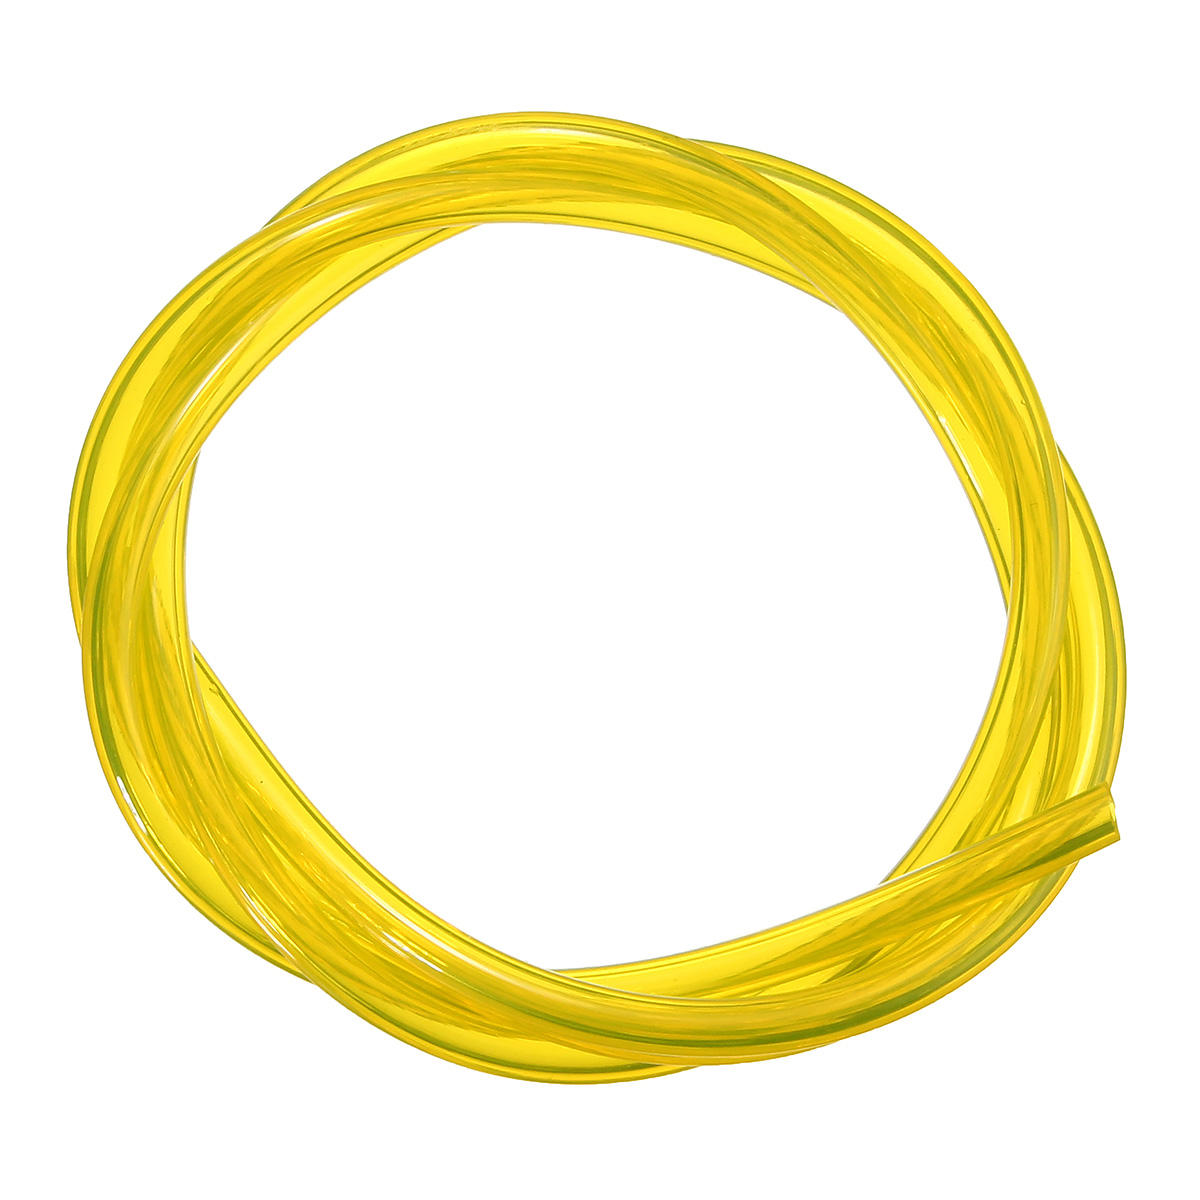 2x35mm Hose Fuel Filter Hose For Mower Motorcycle Scooter Brushcutter Sell Fuel Gas Line Pipe Hose Trimmer Chainsaw Blower